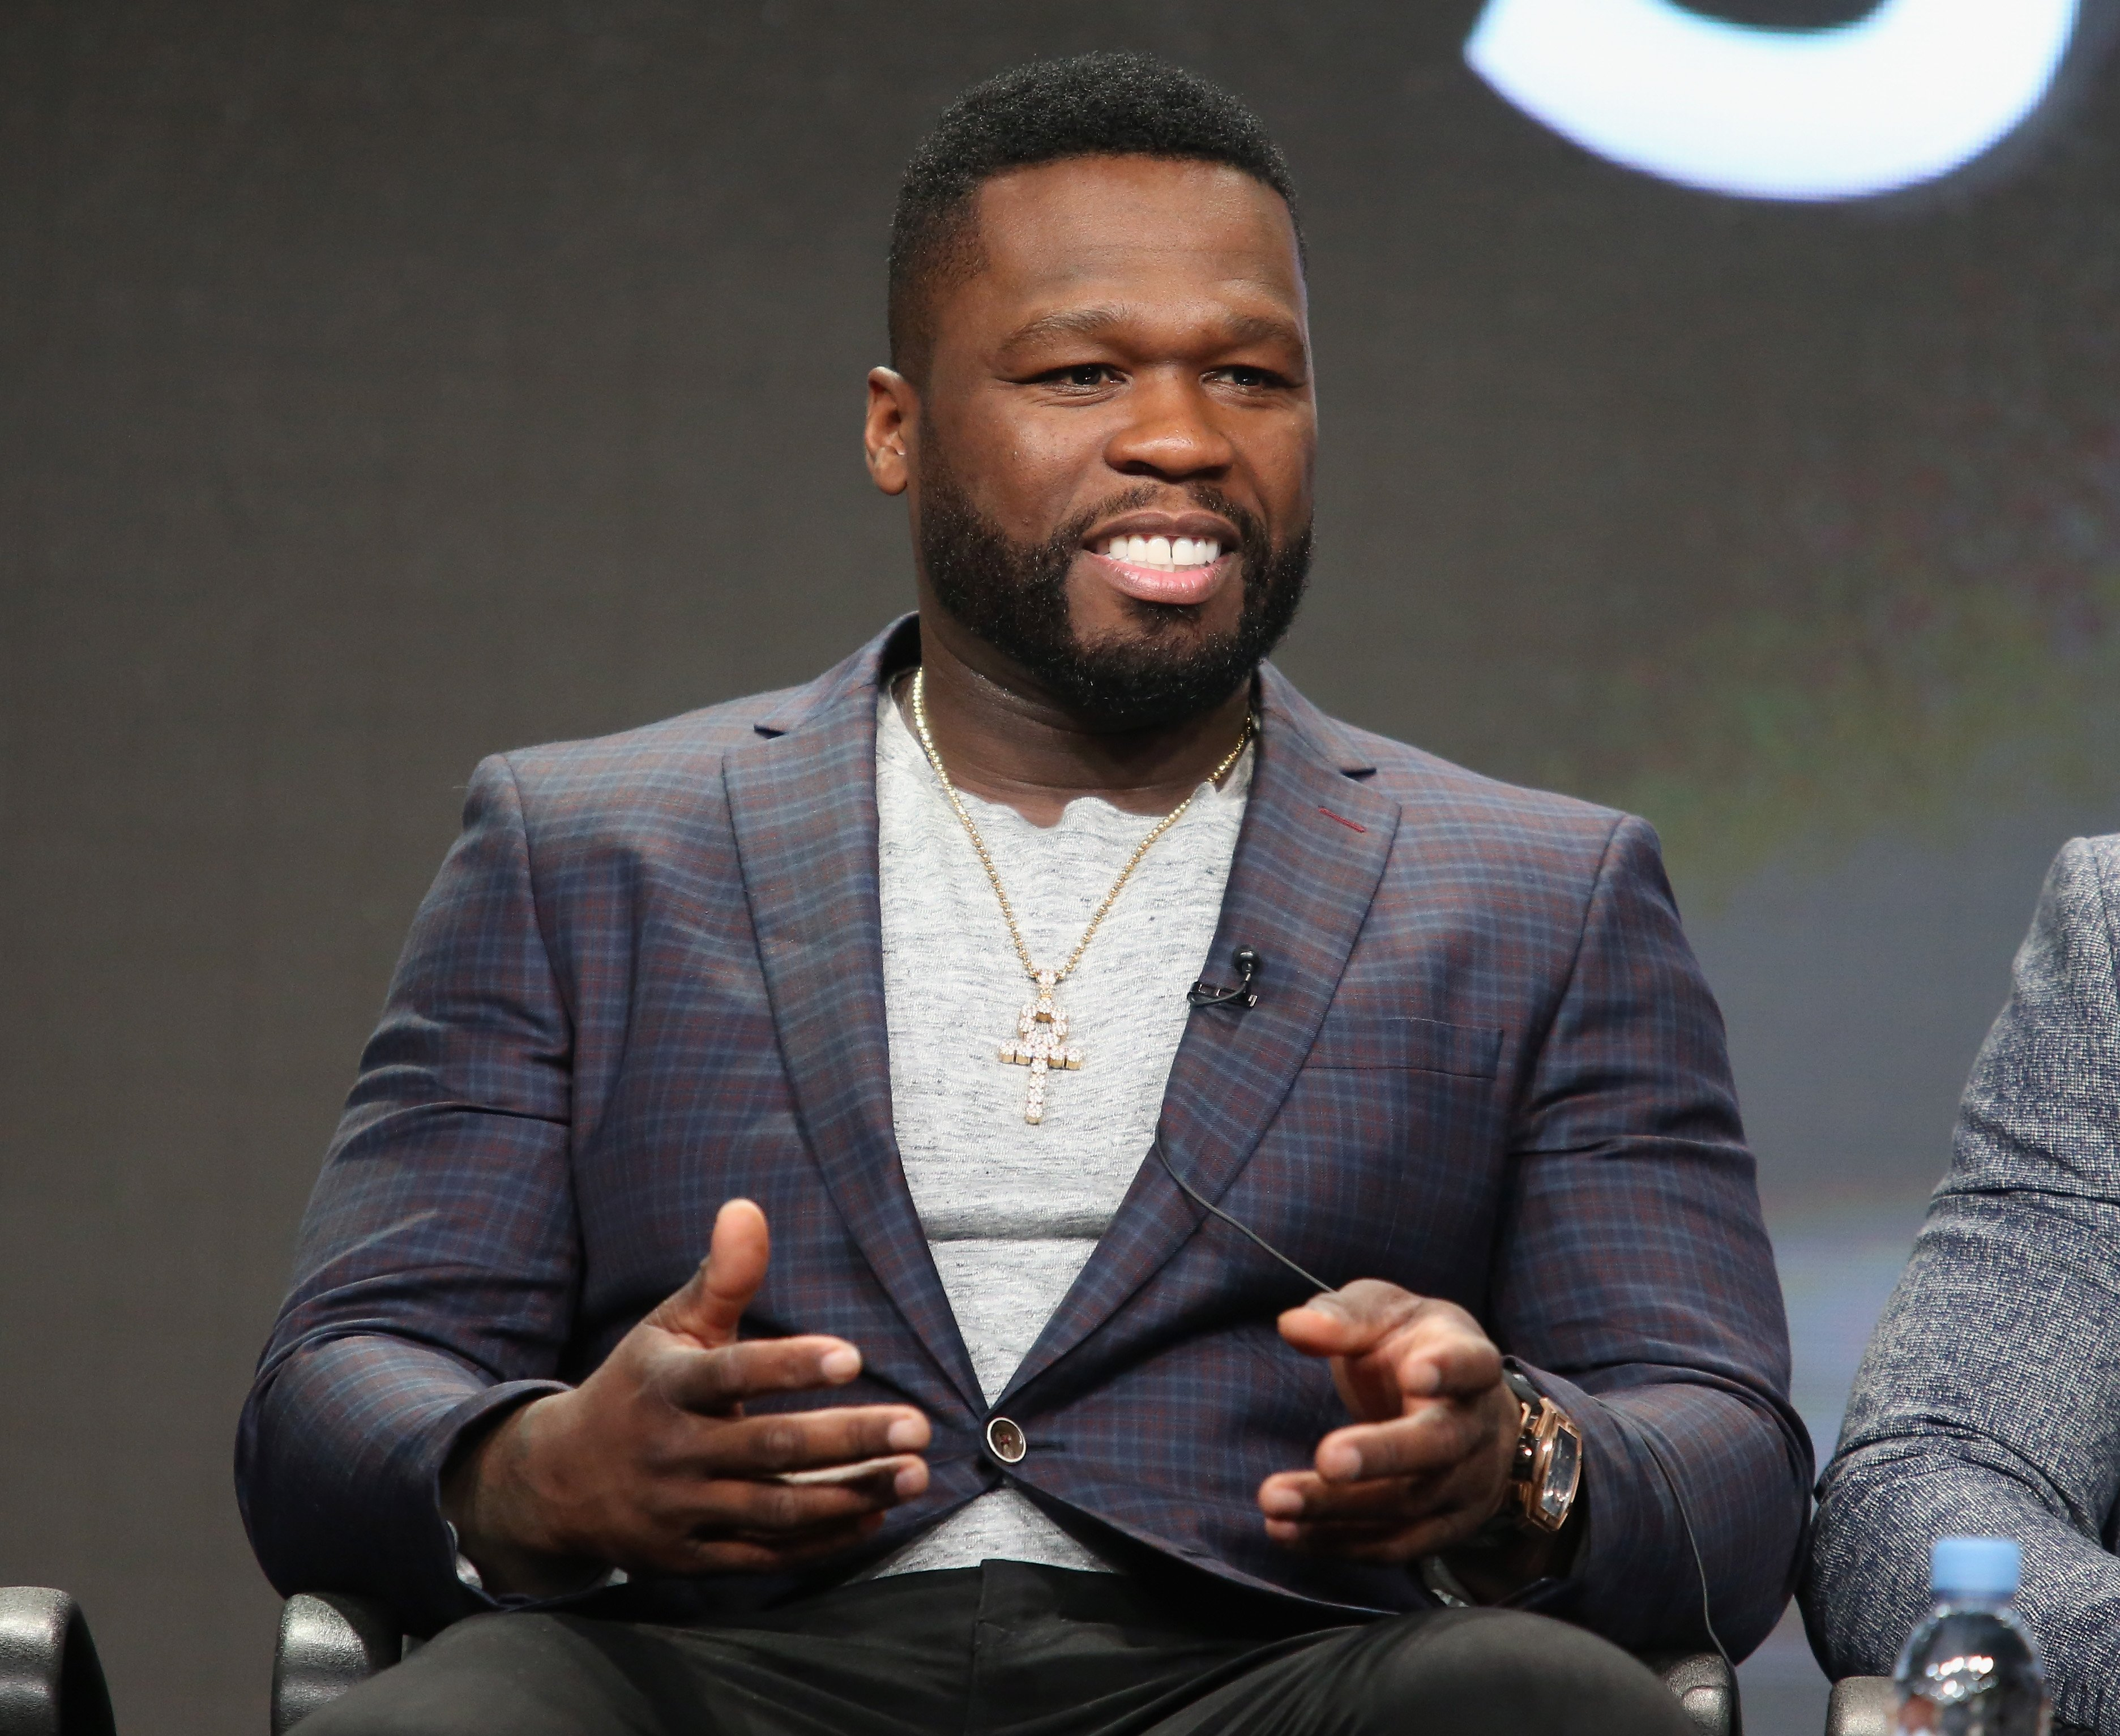 """50 Cent speaking at a """"Power"""" panel discussion in 2016. 